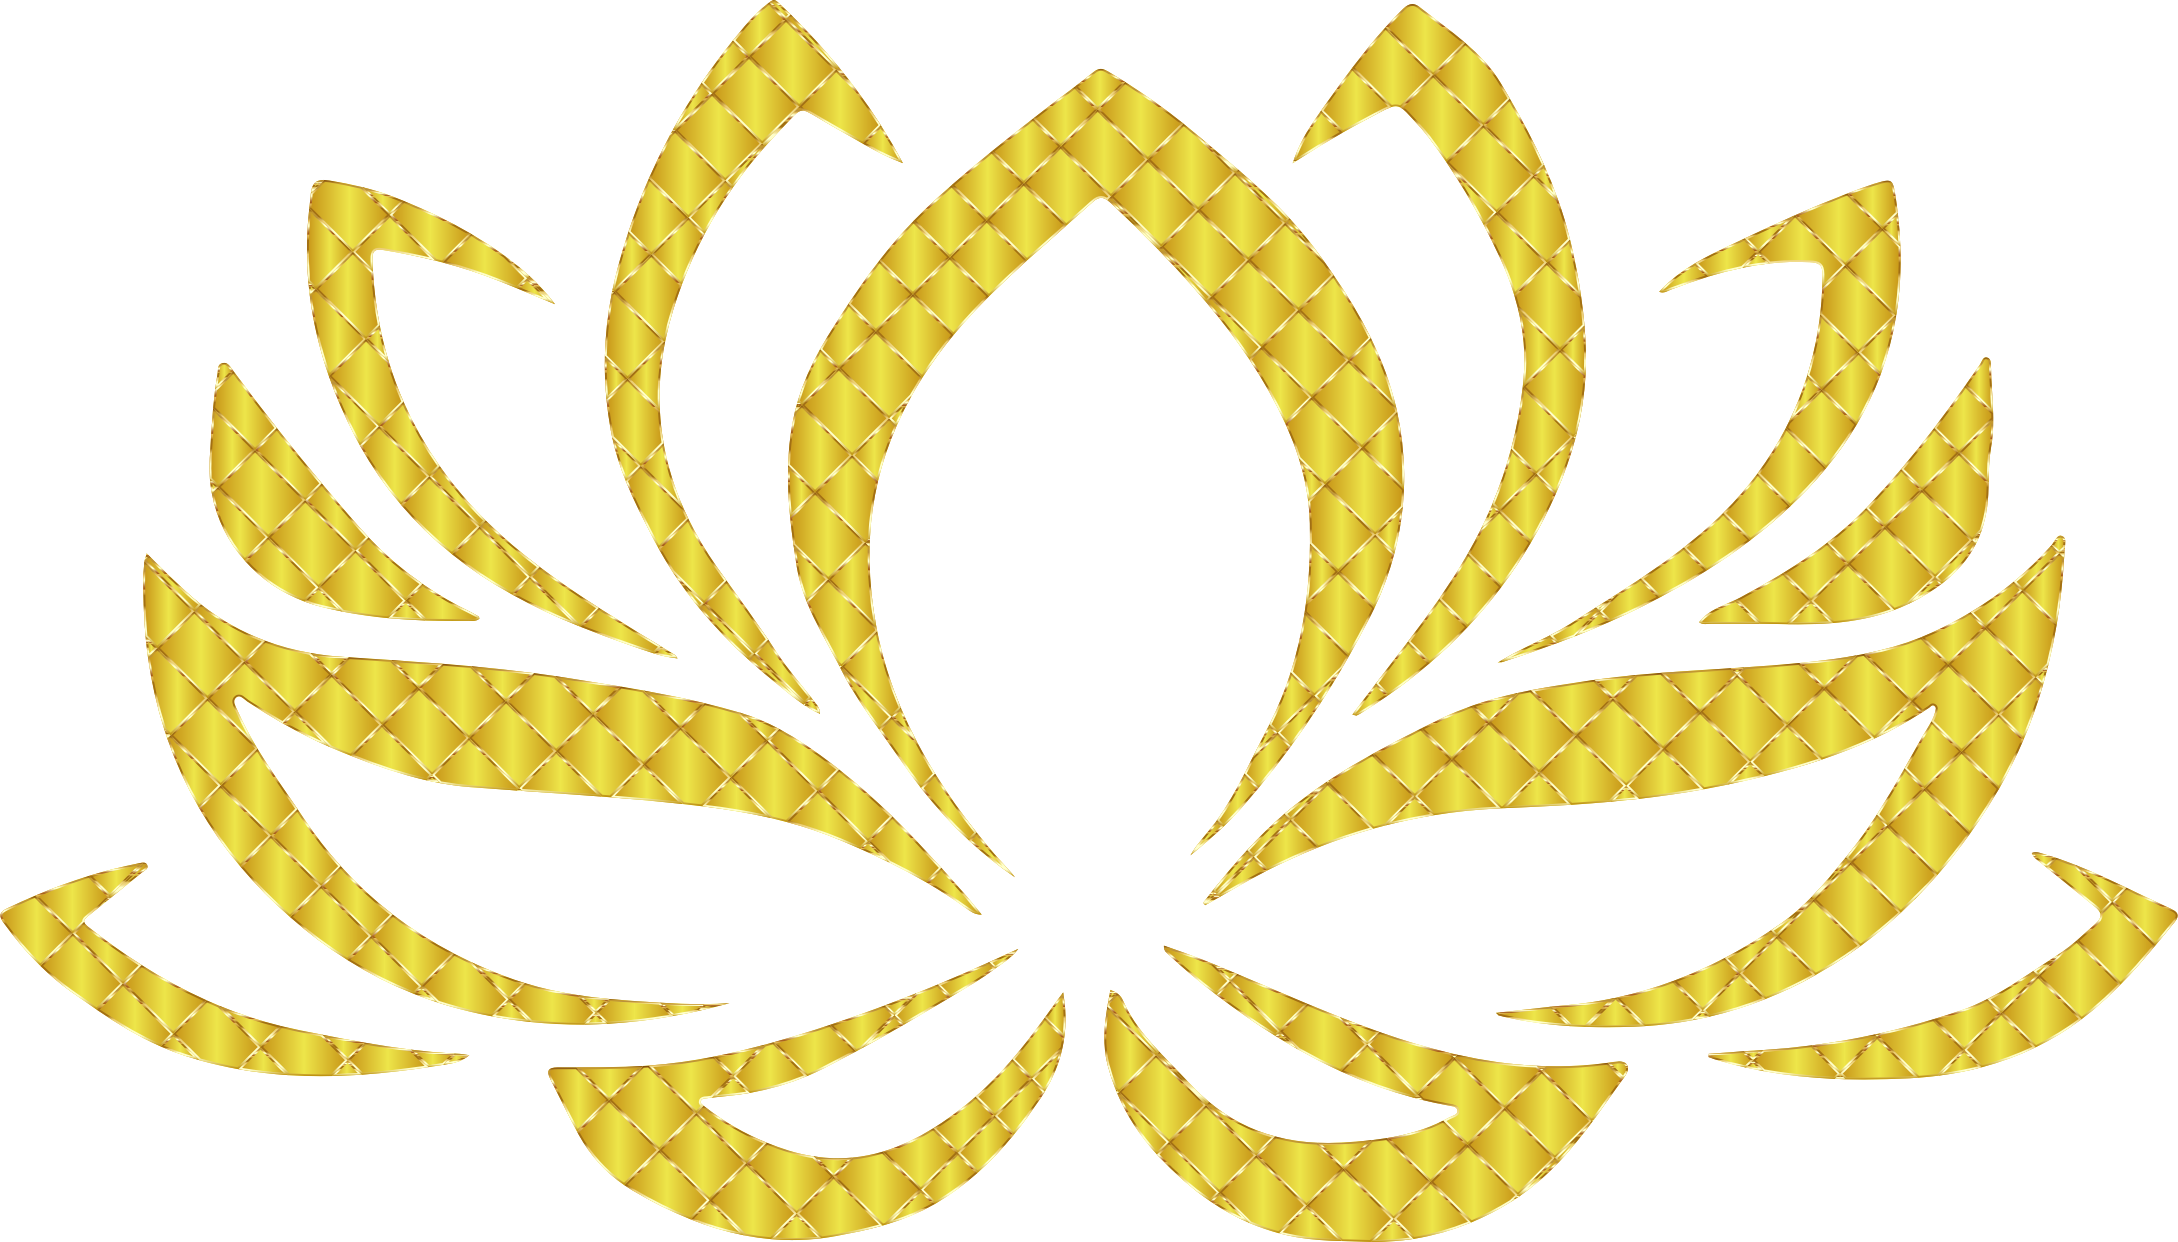 Golden Lotus Flower 3 No Background by GDJ